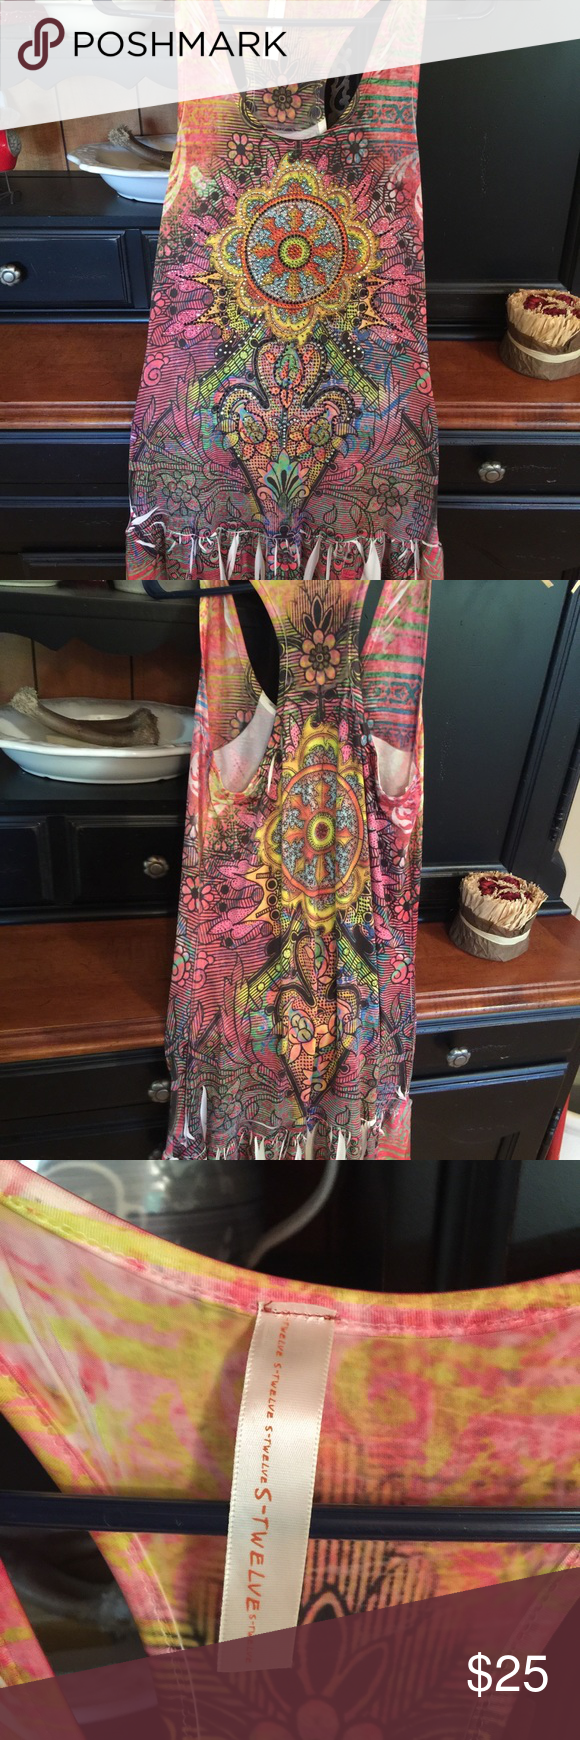 Dress/ Shirt This can be a dress or long top over leggings soo cute size Small / petite s-twelve Dresses